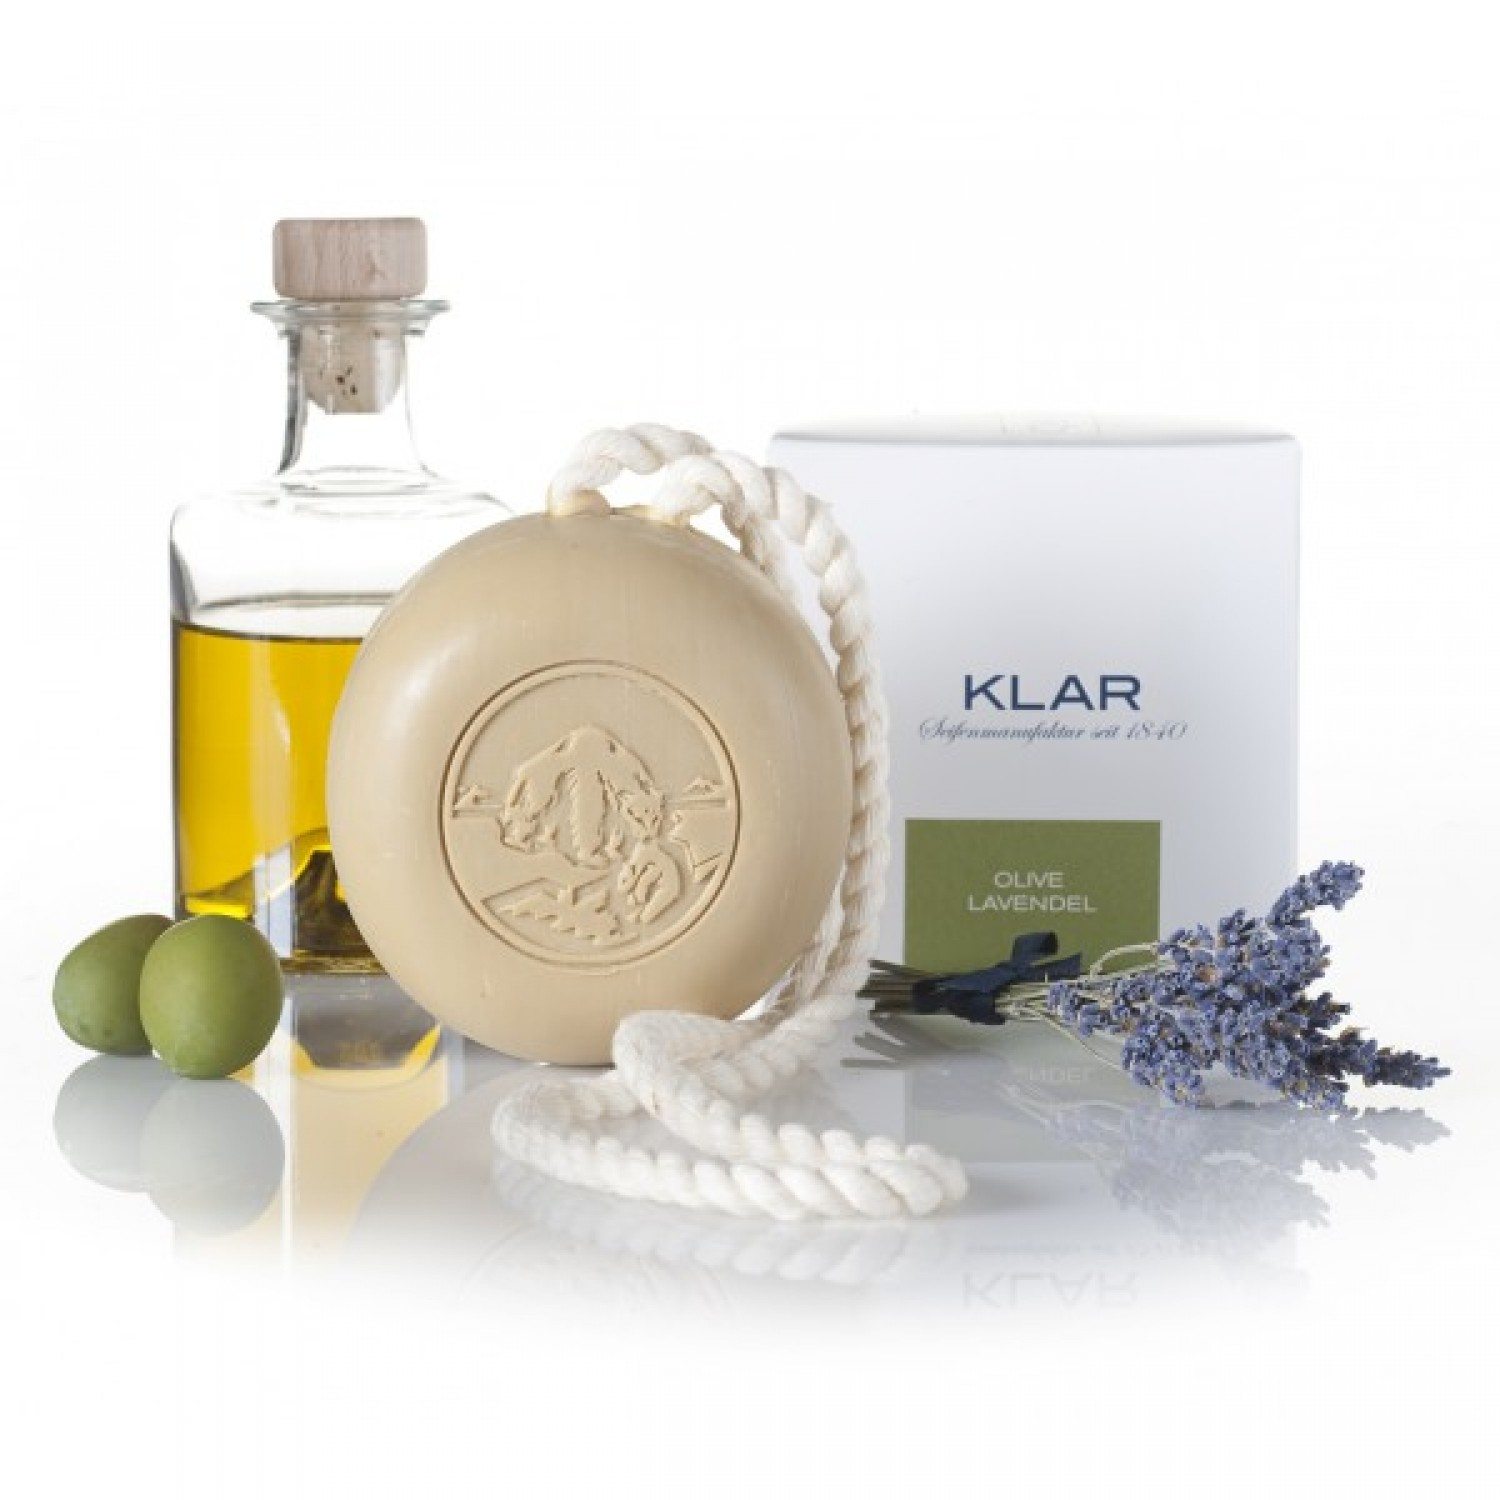 Vegan and Organic Hair and Body Soap Lavender | Klar's